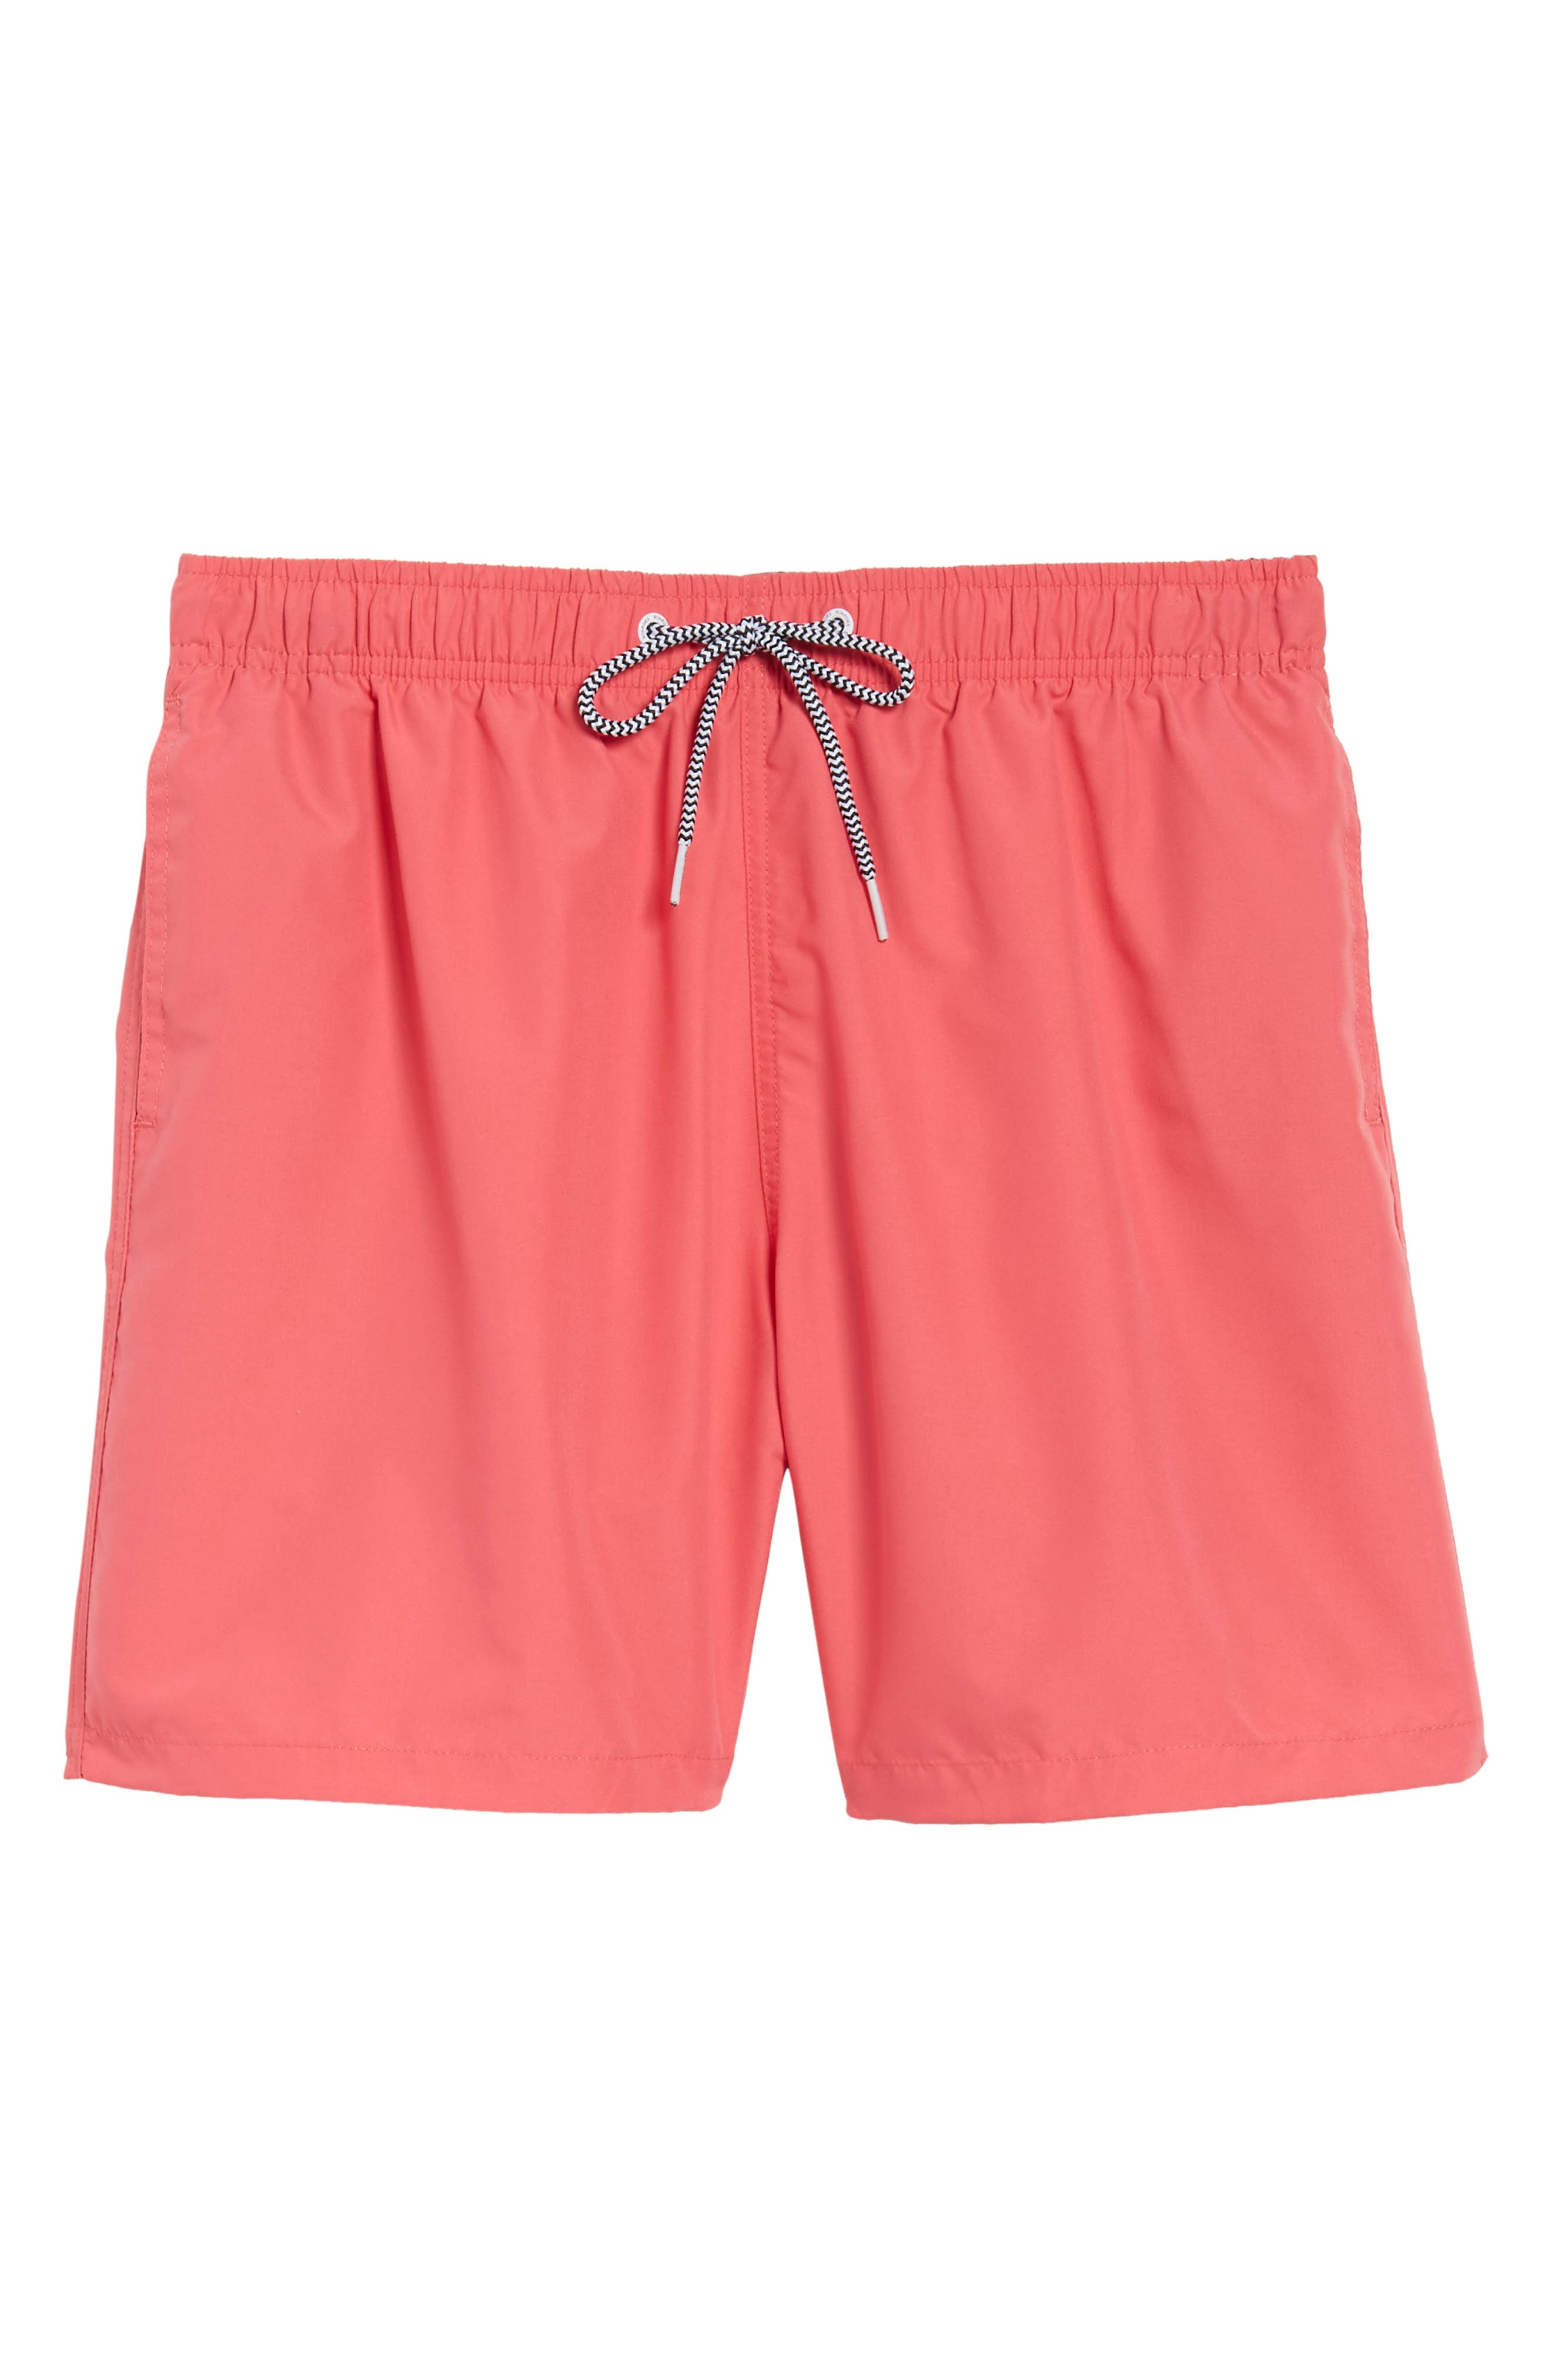 Swim Trunks,                             Alternate thumbnail 6, color,                             Red